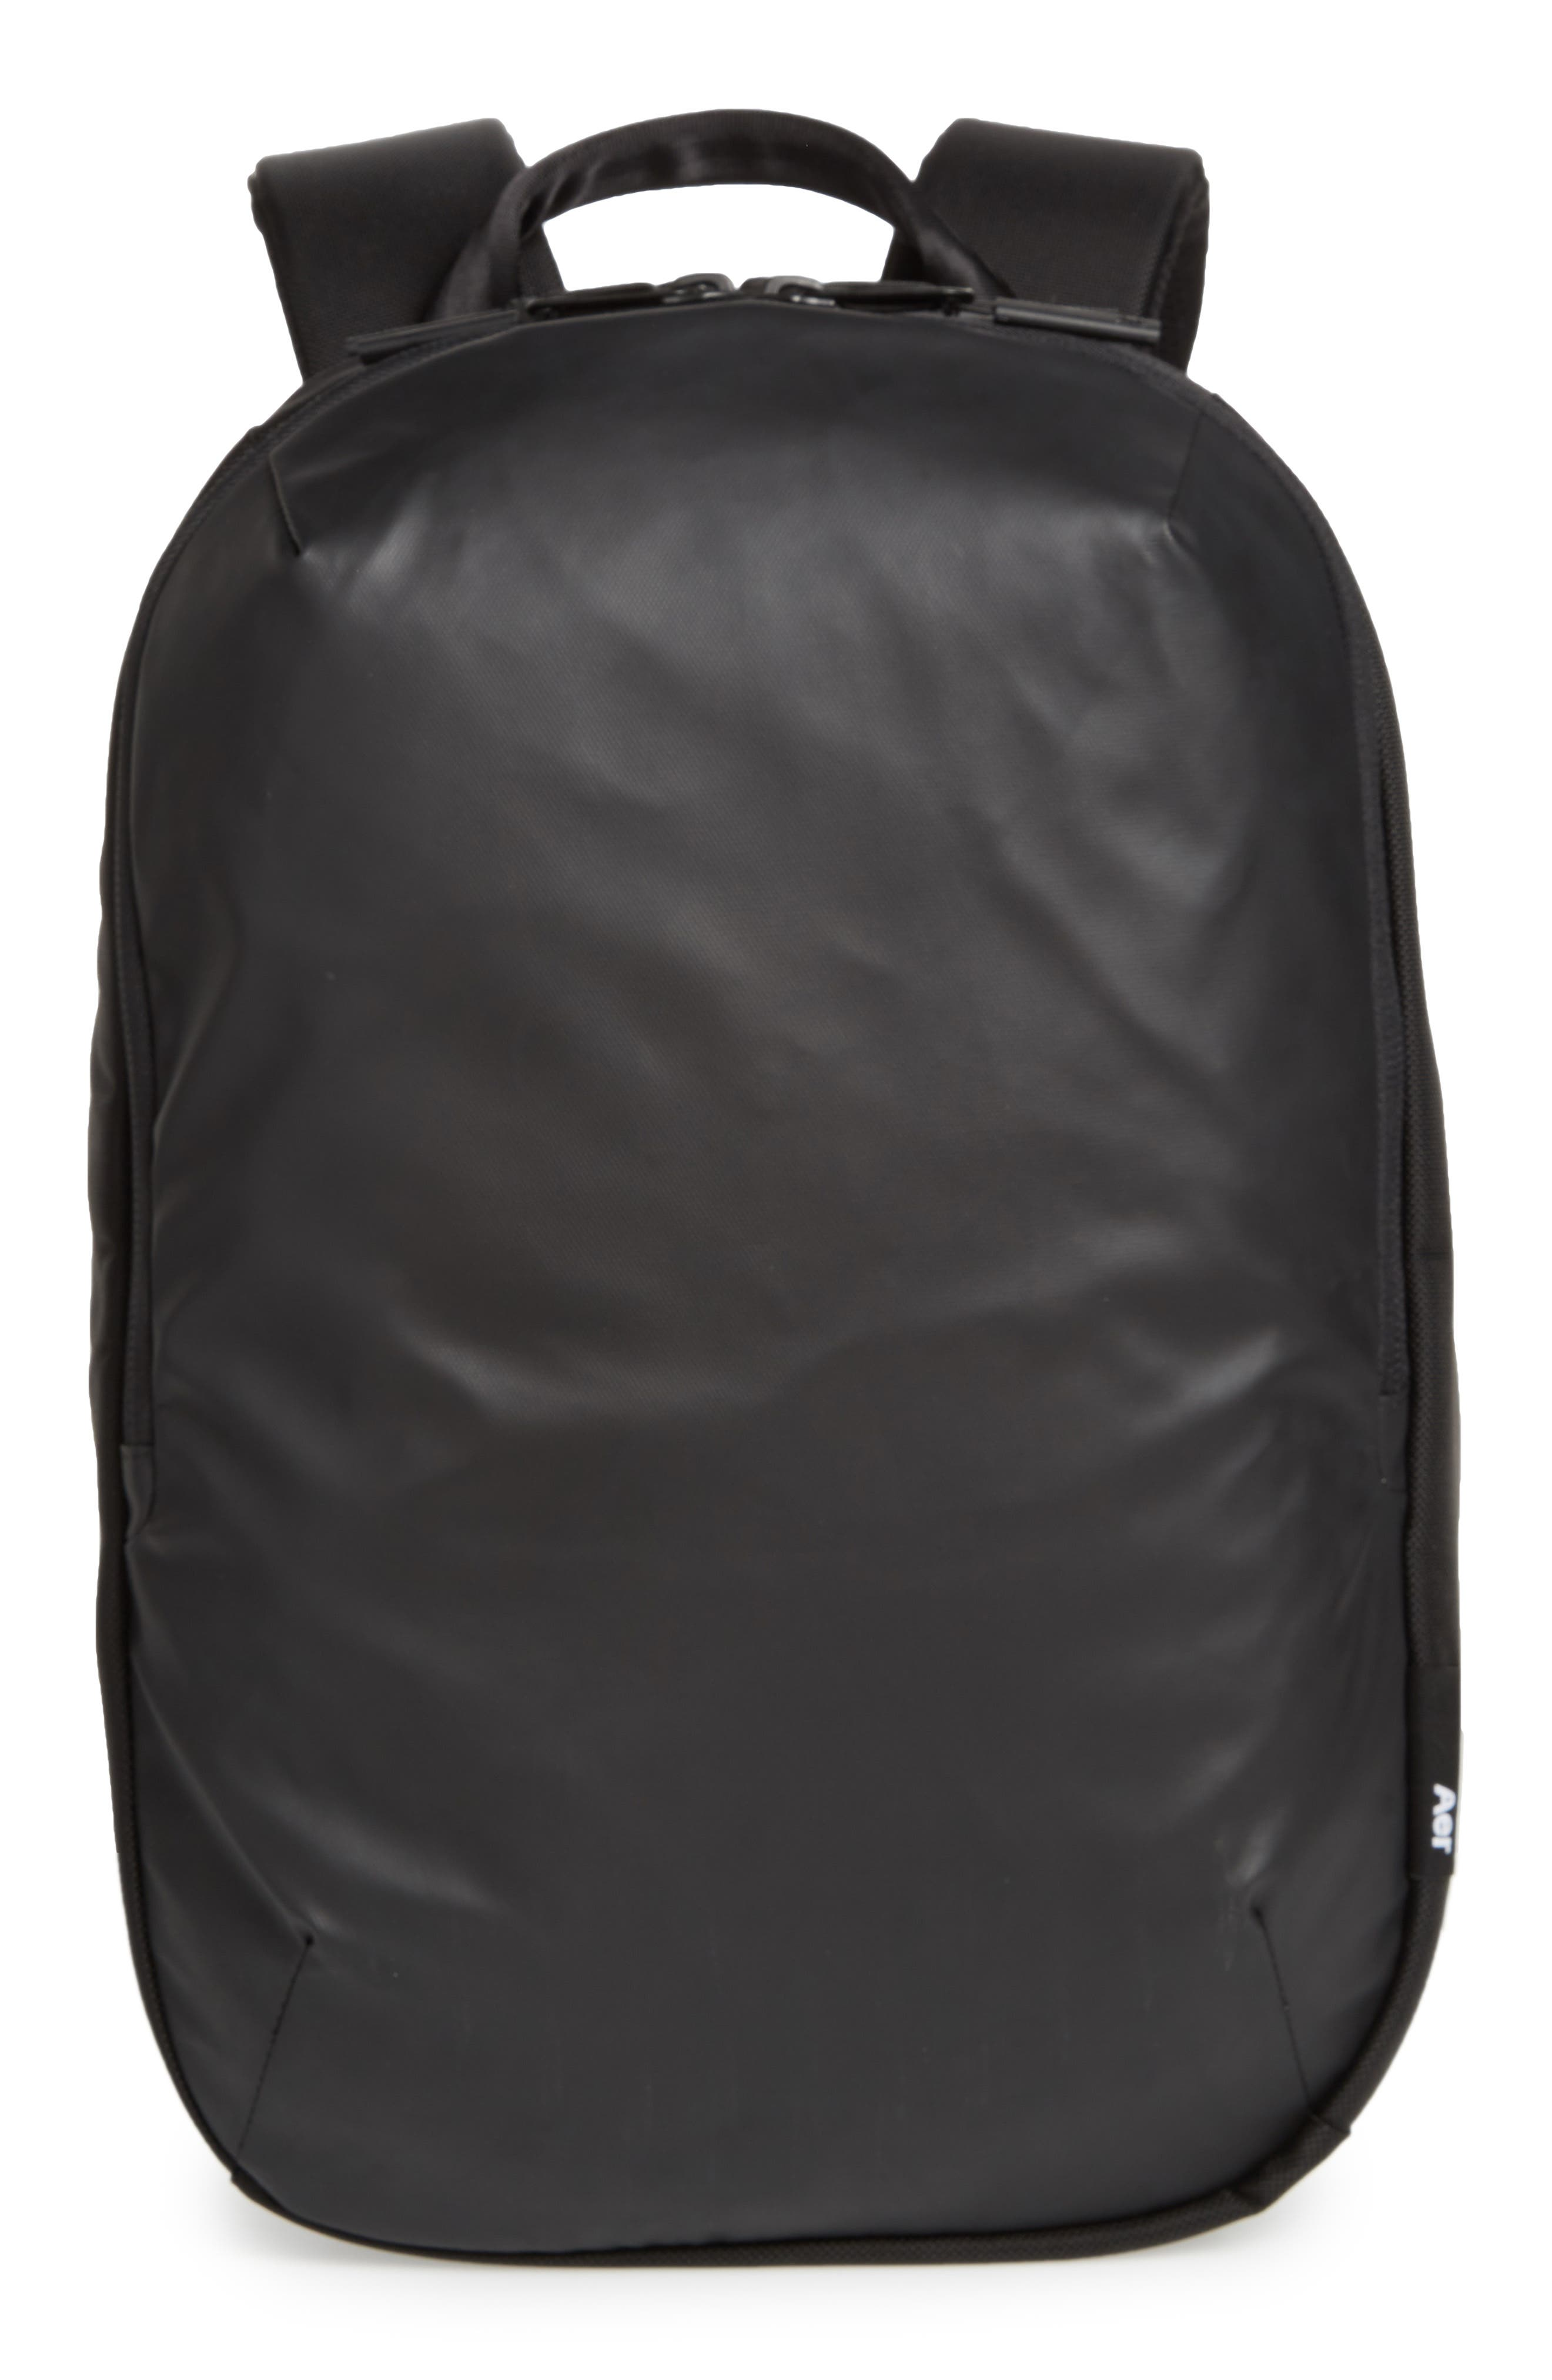 Work Day Backpack,                         Main,                         color, Black